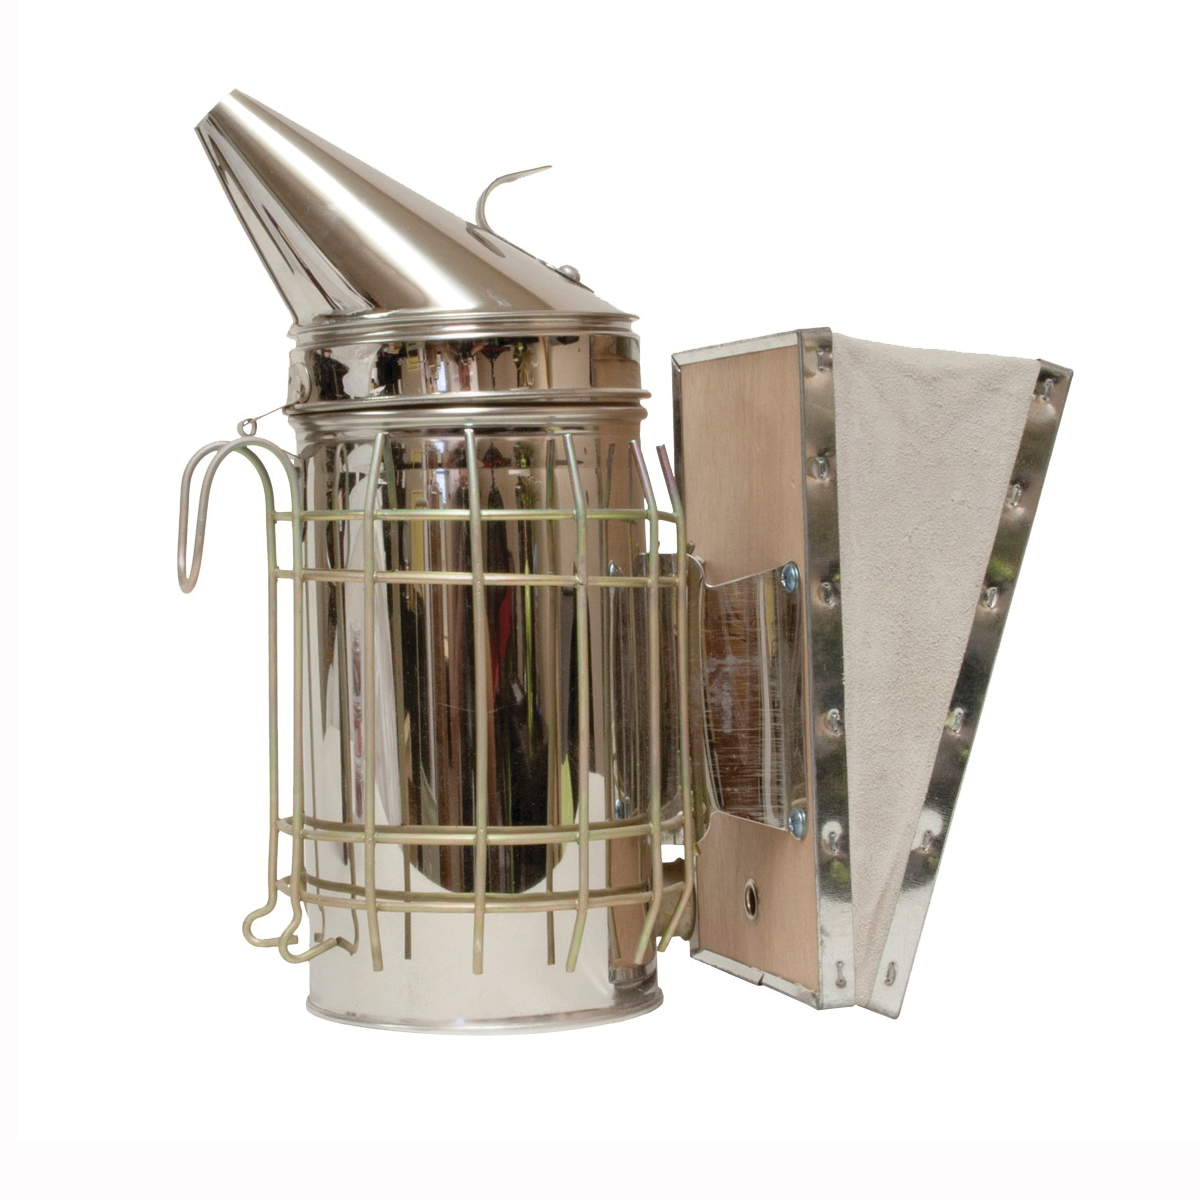 Picture of HARVEST LANE HONEY SMK3-101 Bee Smoker, Steel, For: Bee Keepers